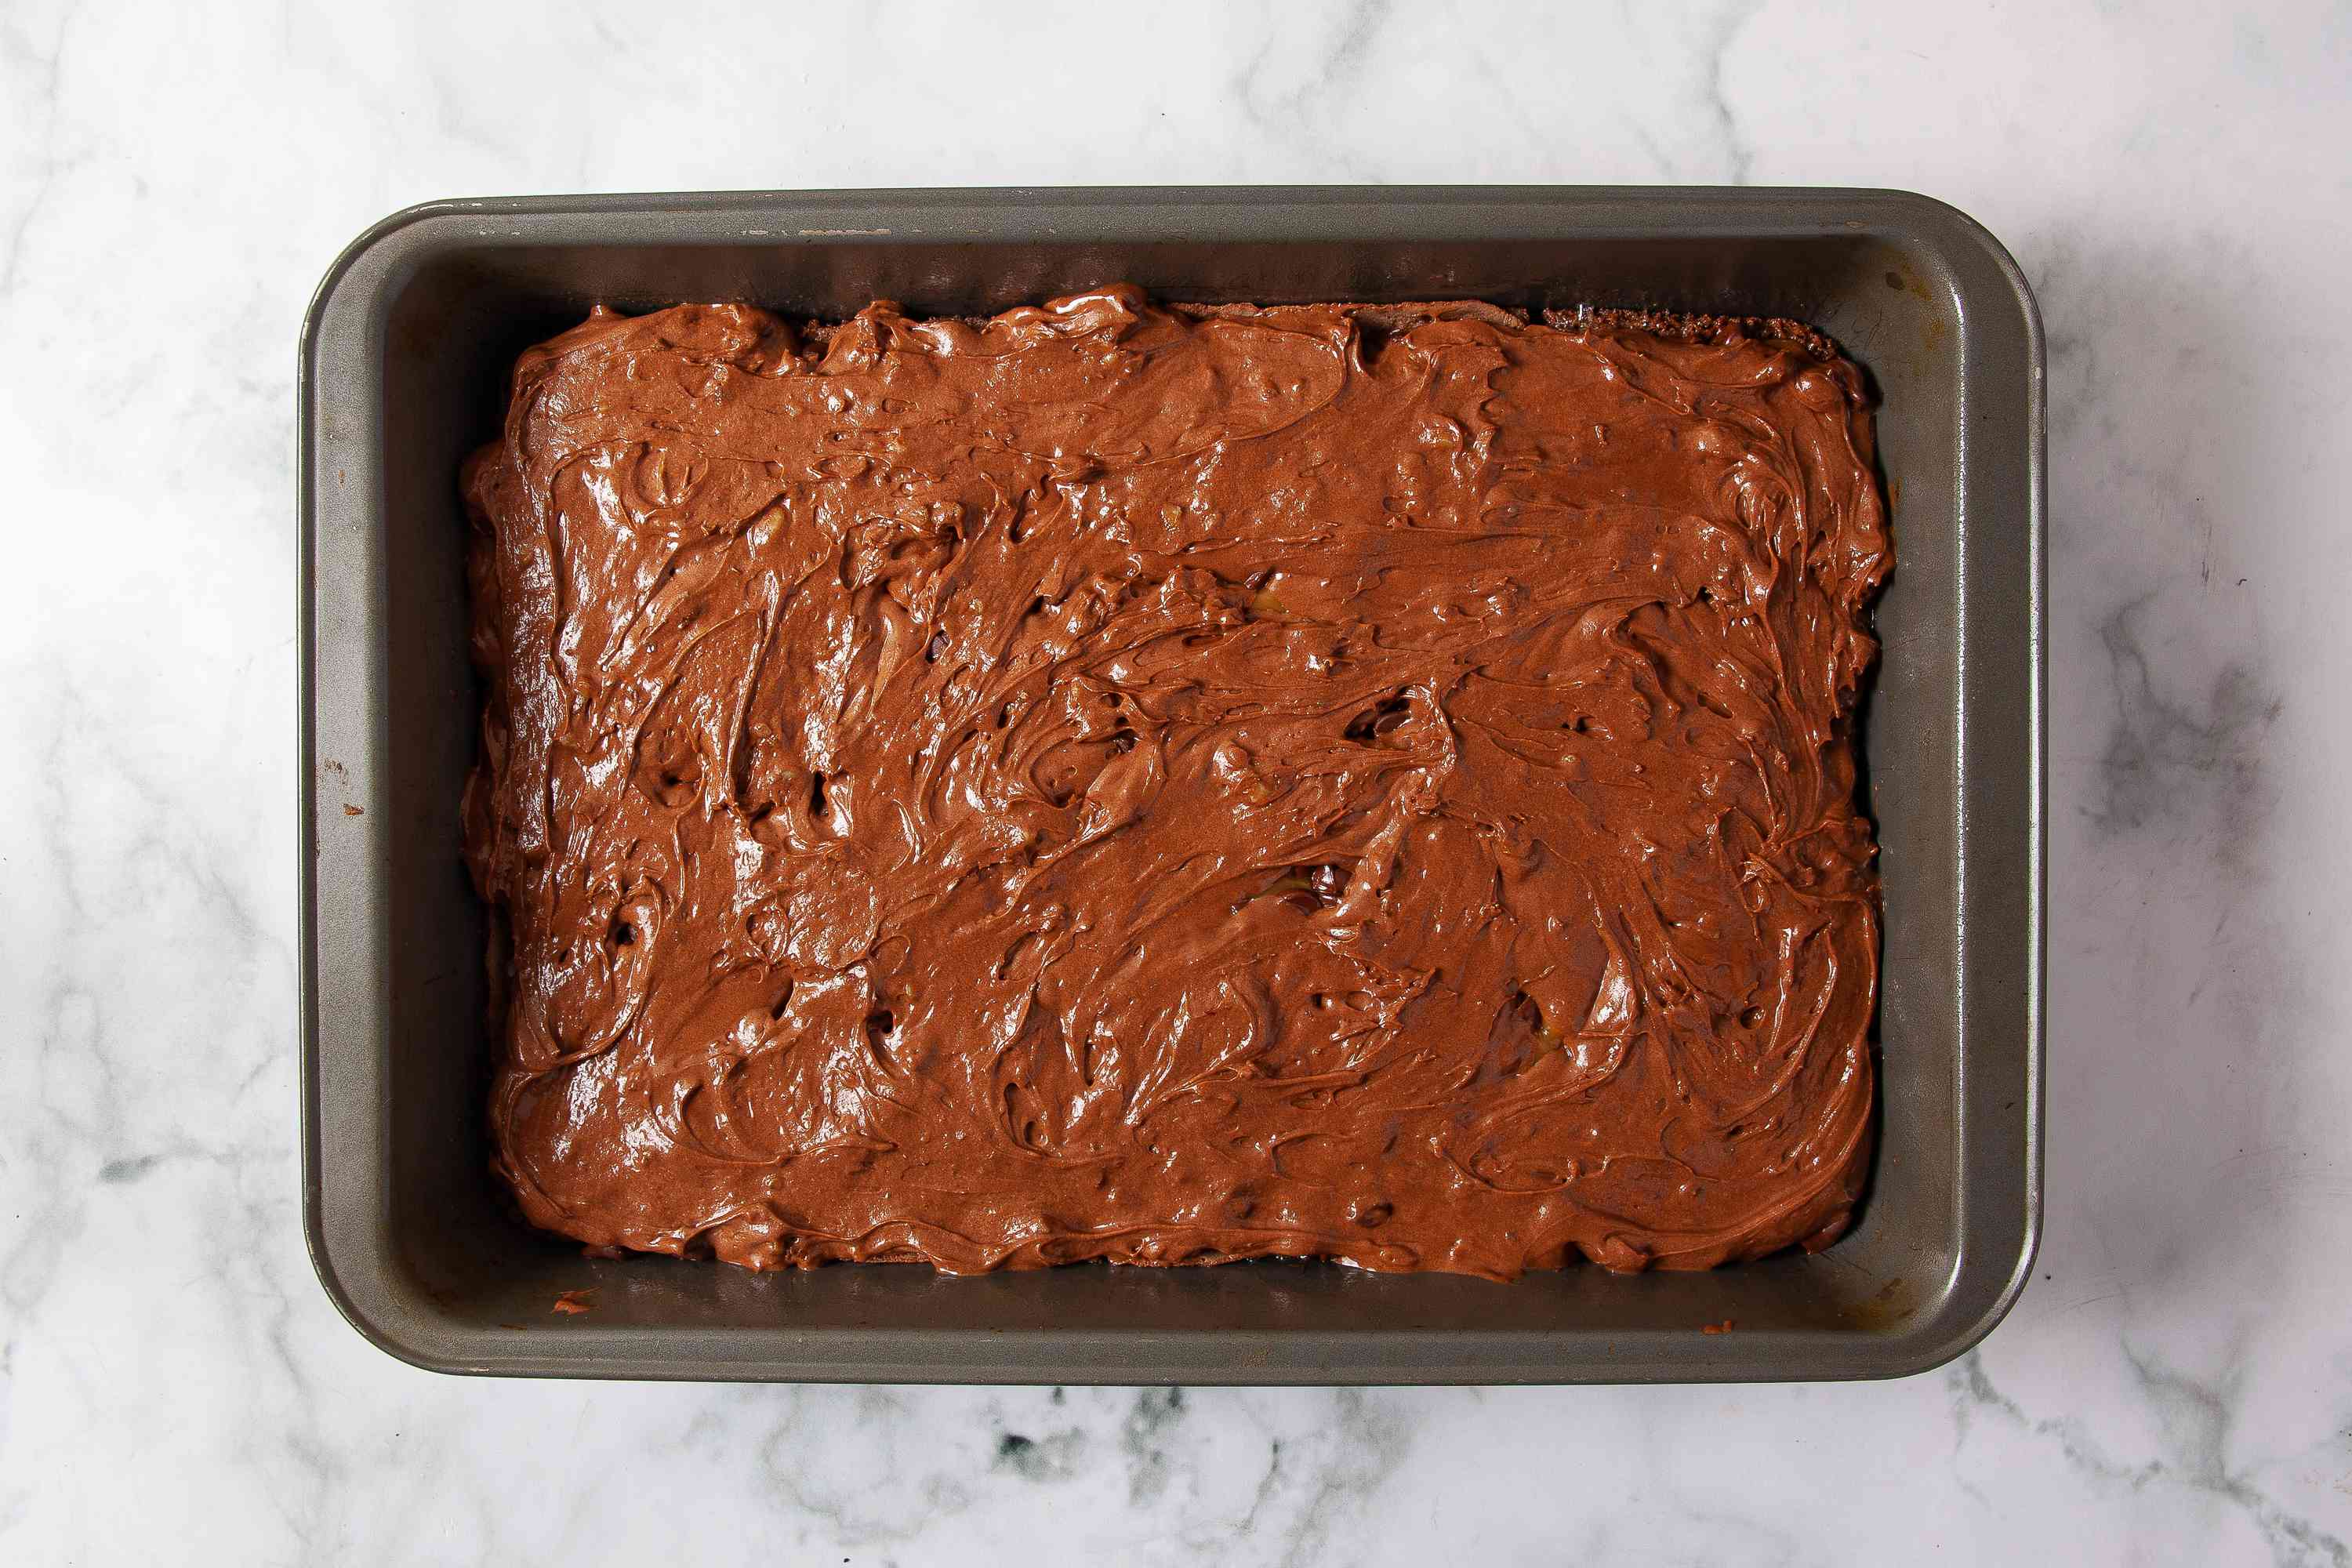 Remaining brownie batter spread on top